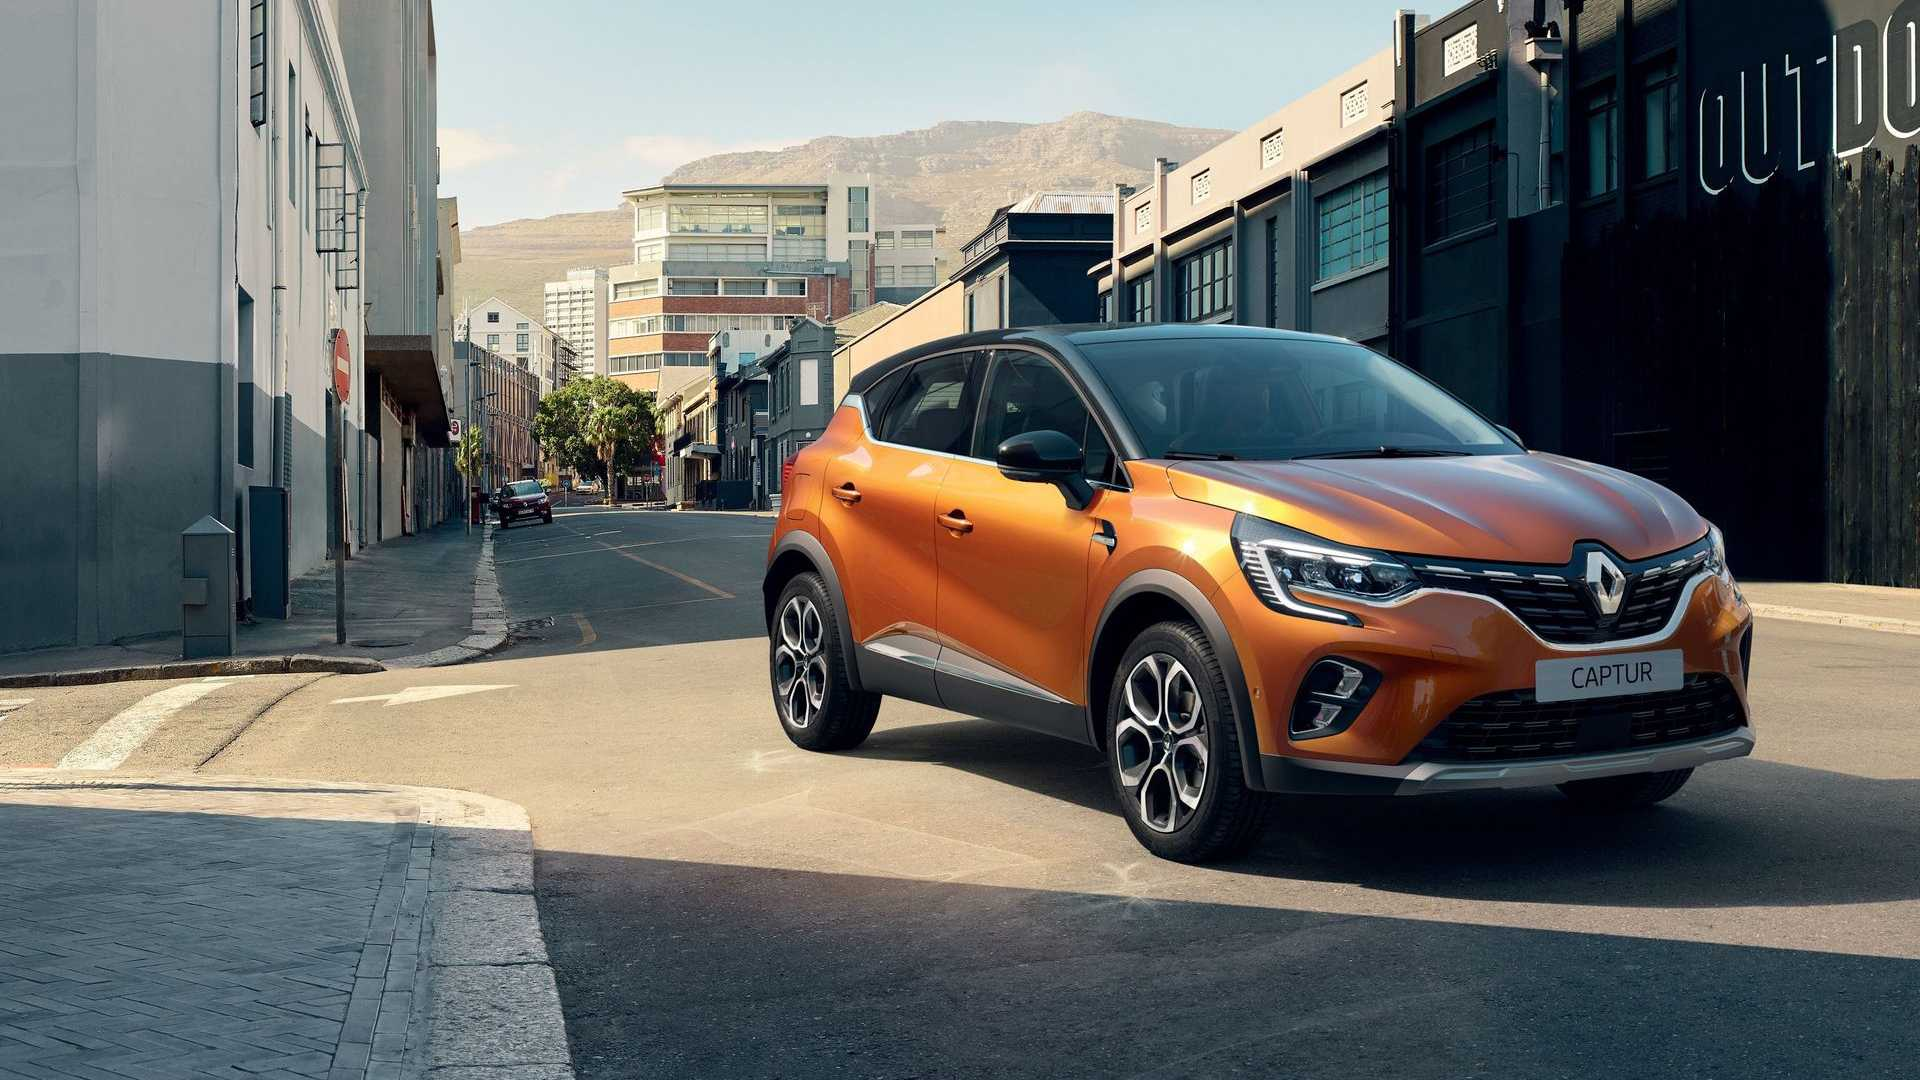 The technical specifications of the 2020 Renault Captur Plug-in Hybrid are here at last, so let us take a closer look.